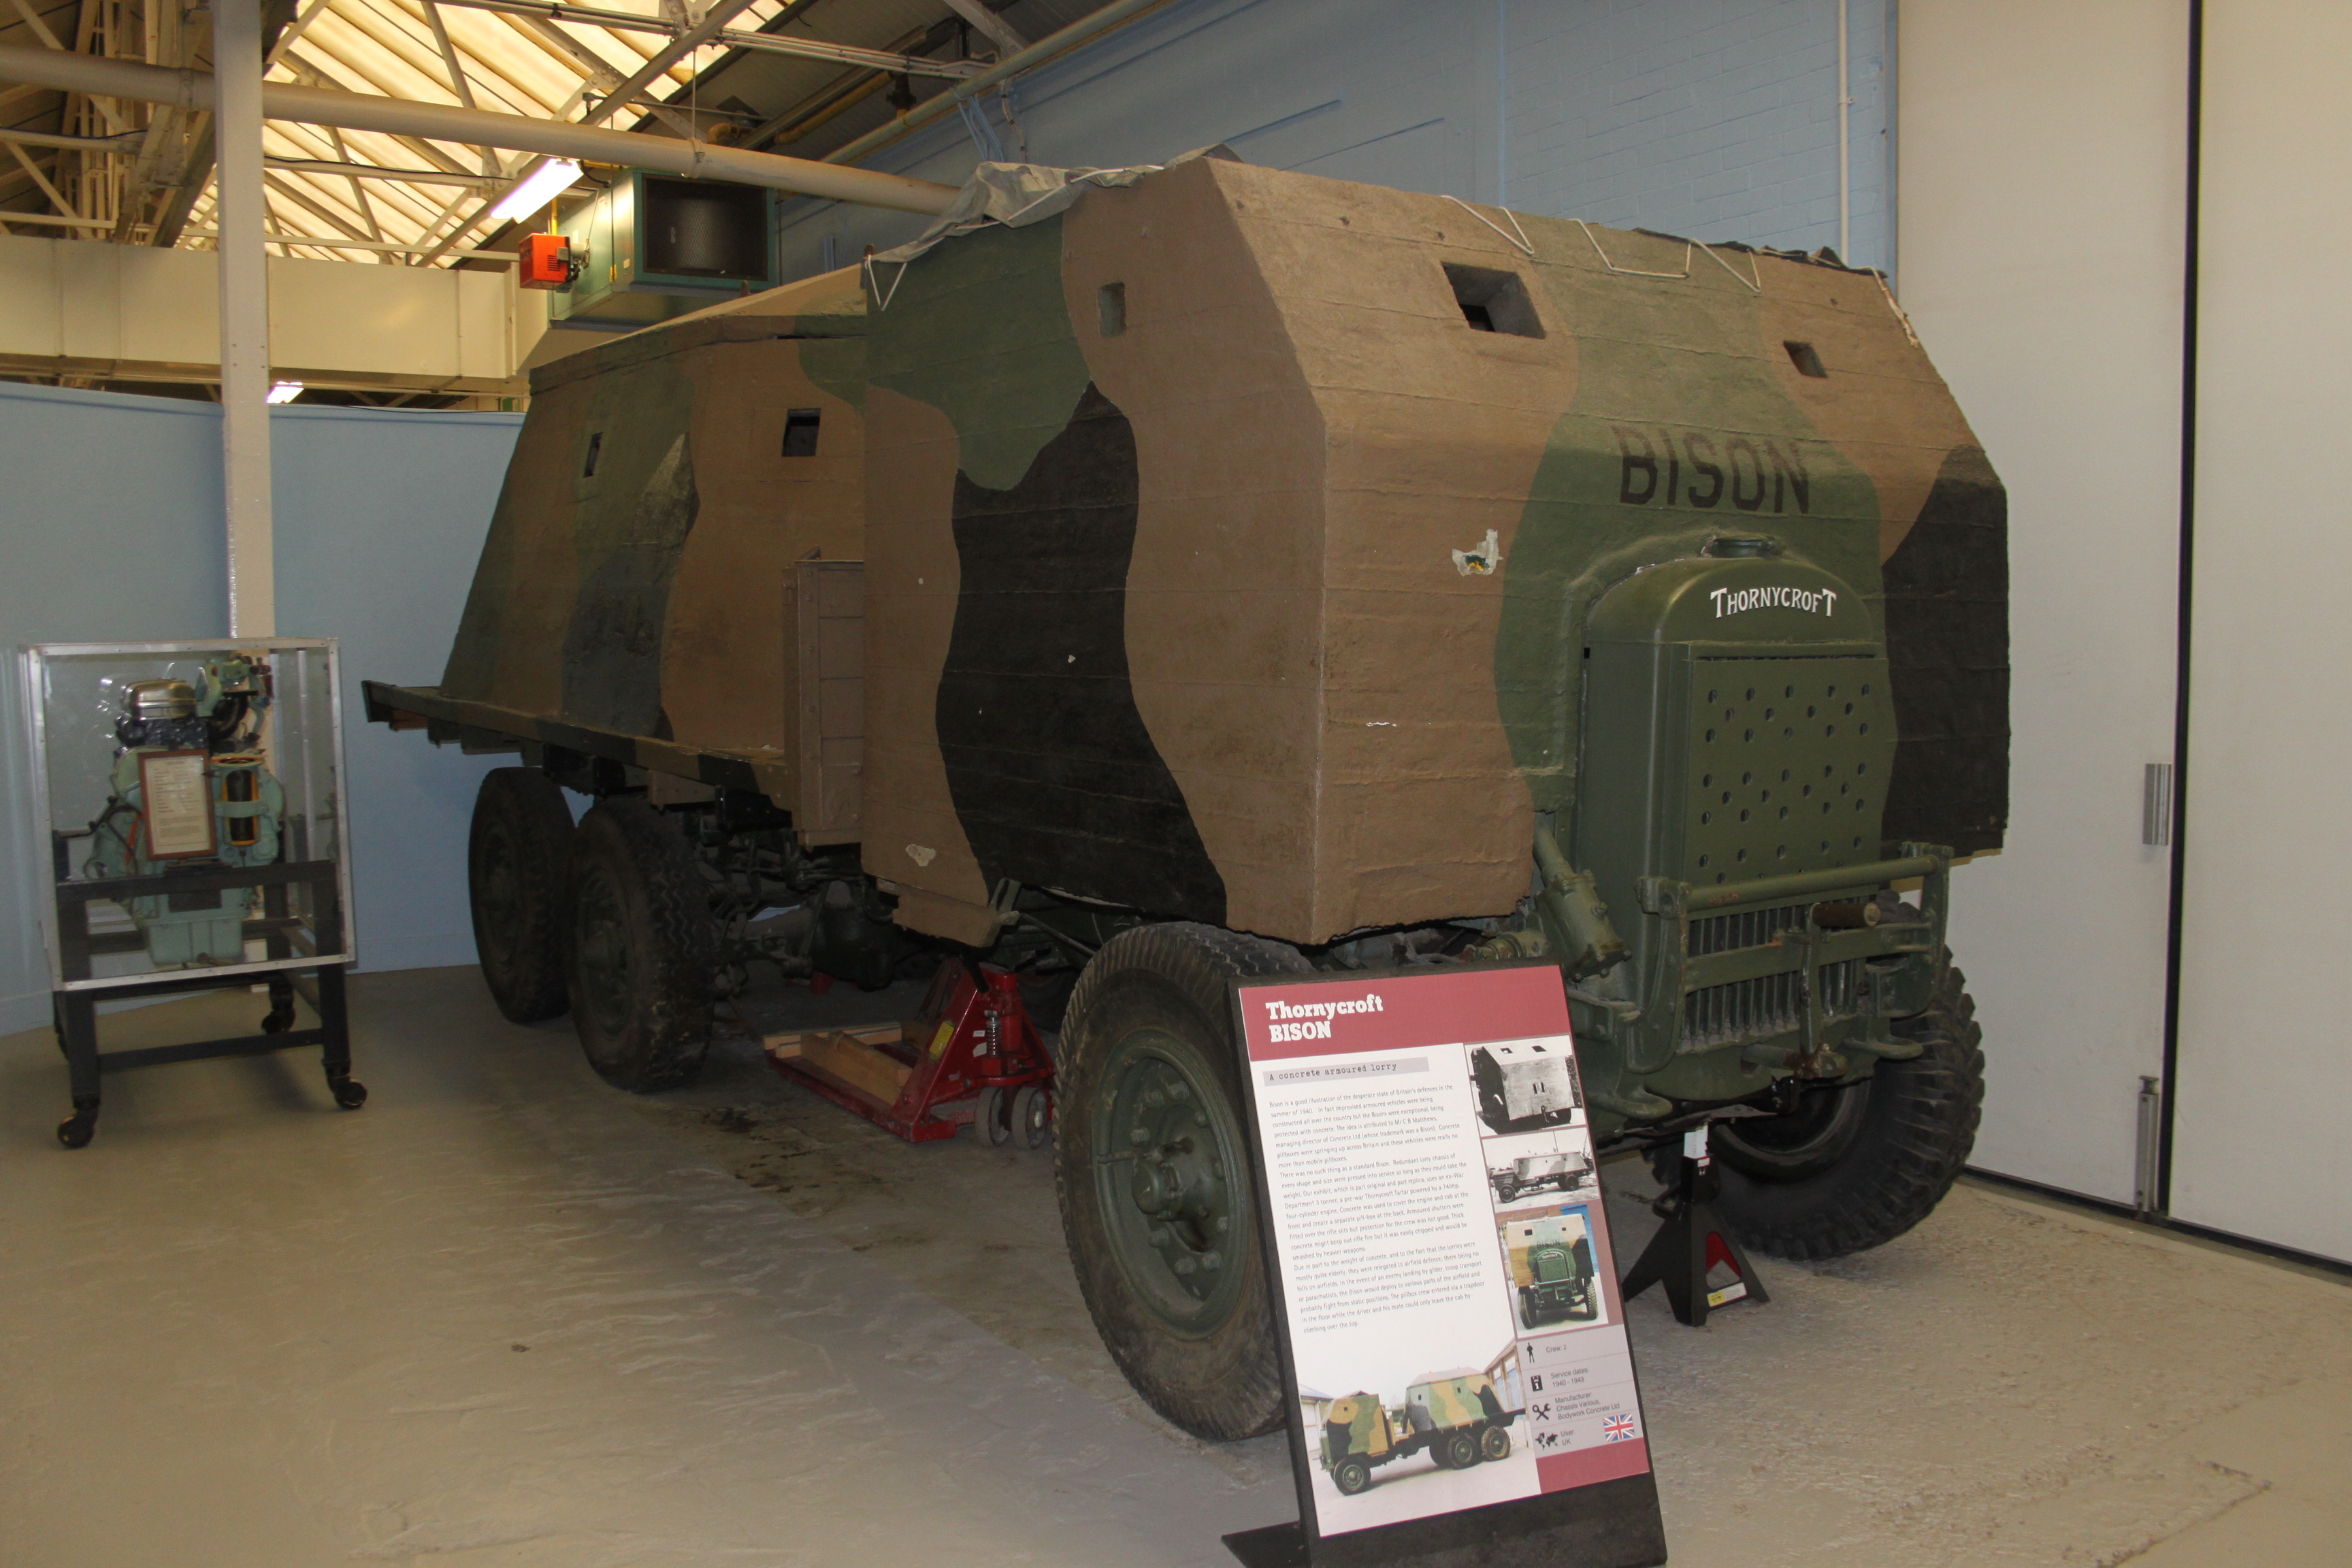 Bison_concrete_armoured_lorry_at_the_Tan